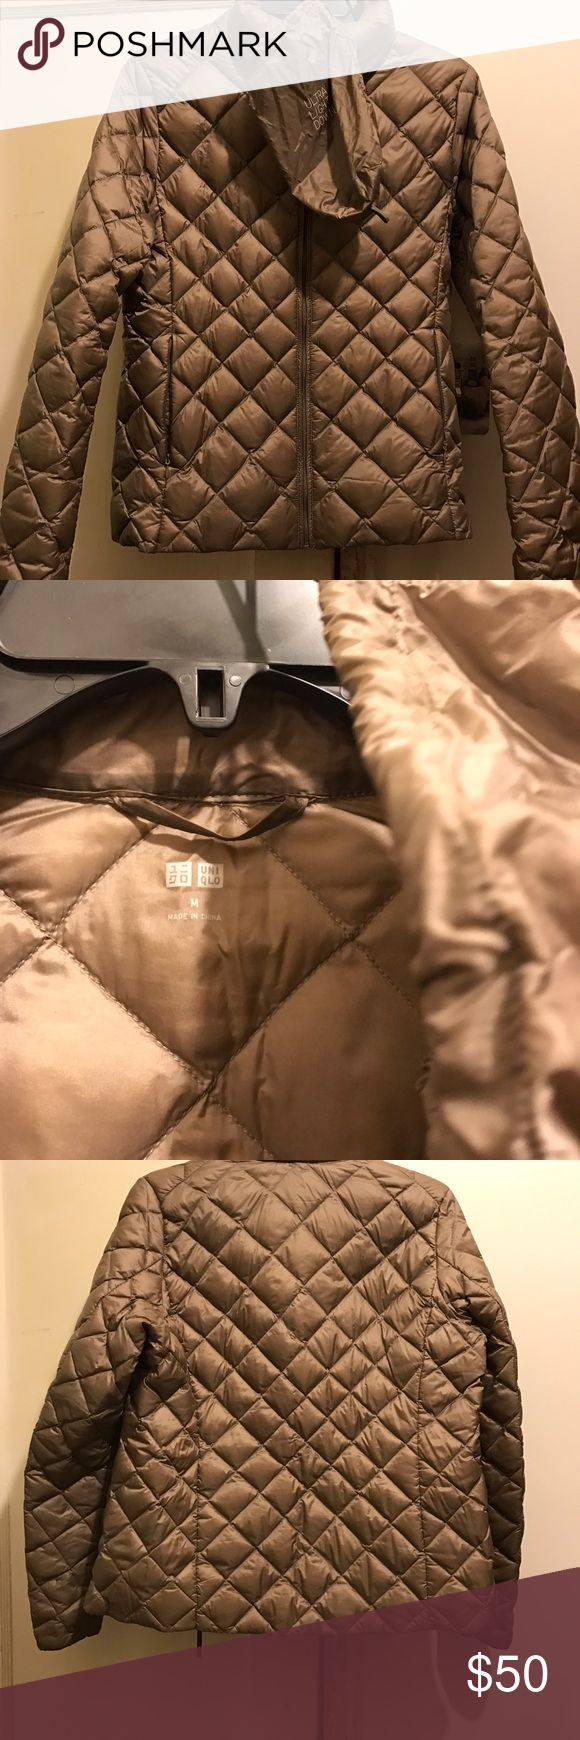 UNIQLO jacket Champagne colored with bag/ ultra light down Uniqlo Jackets & Coats Puffers